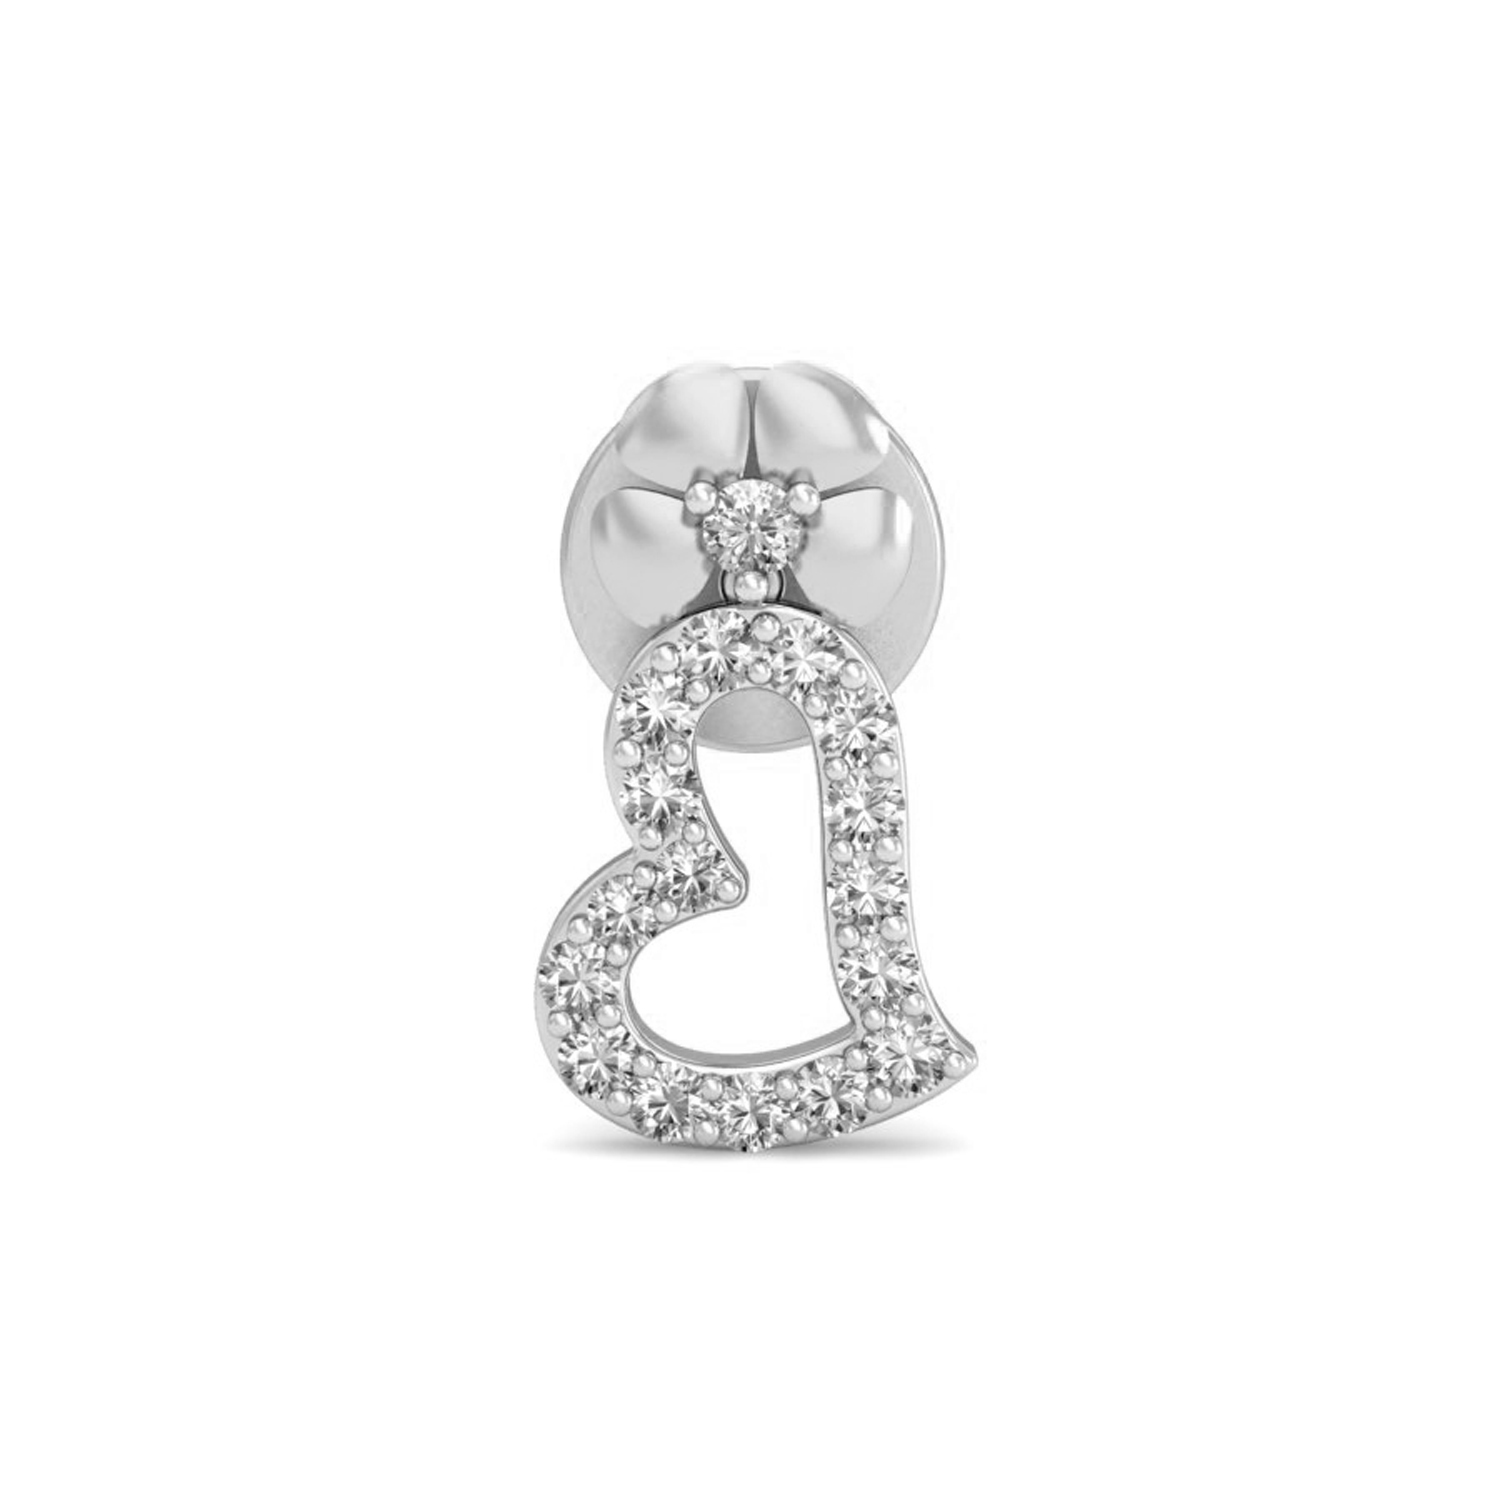 fd473102cc4 ... Heart Shaped Diamond Earrings 0.23 ct Natural Certified Solid Gold  Valentine Gift ...